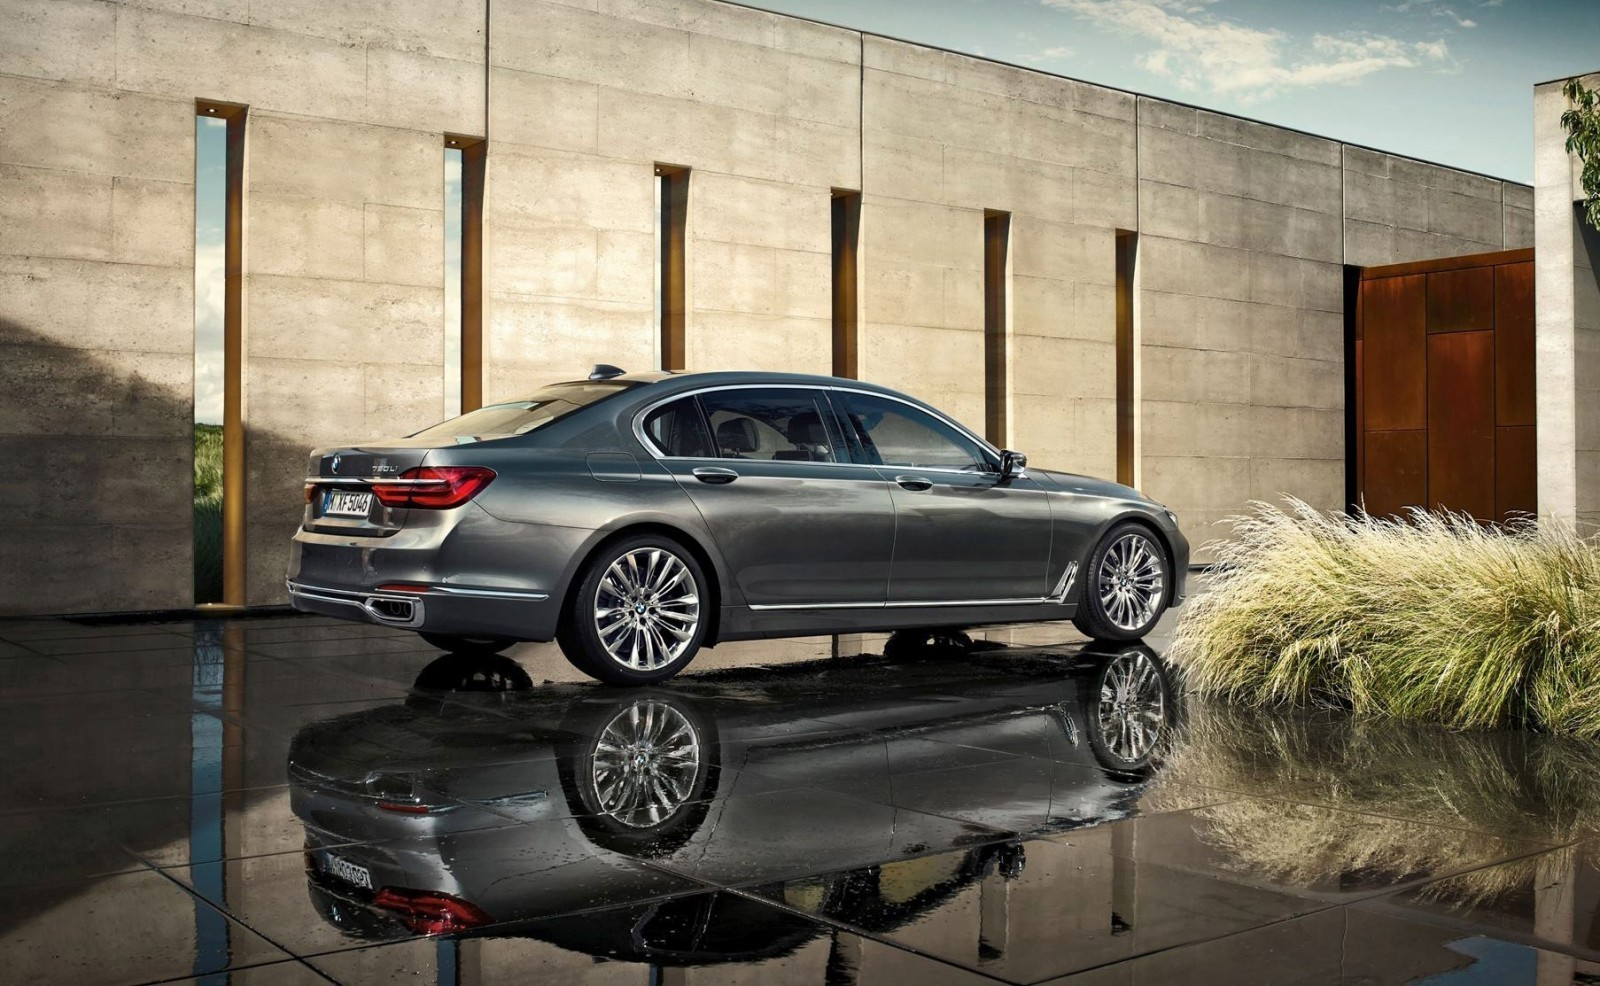 2016 BMW 750 Exterior Photos 54